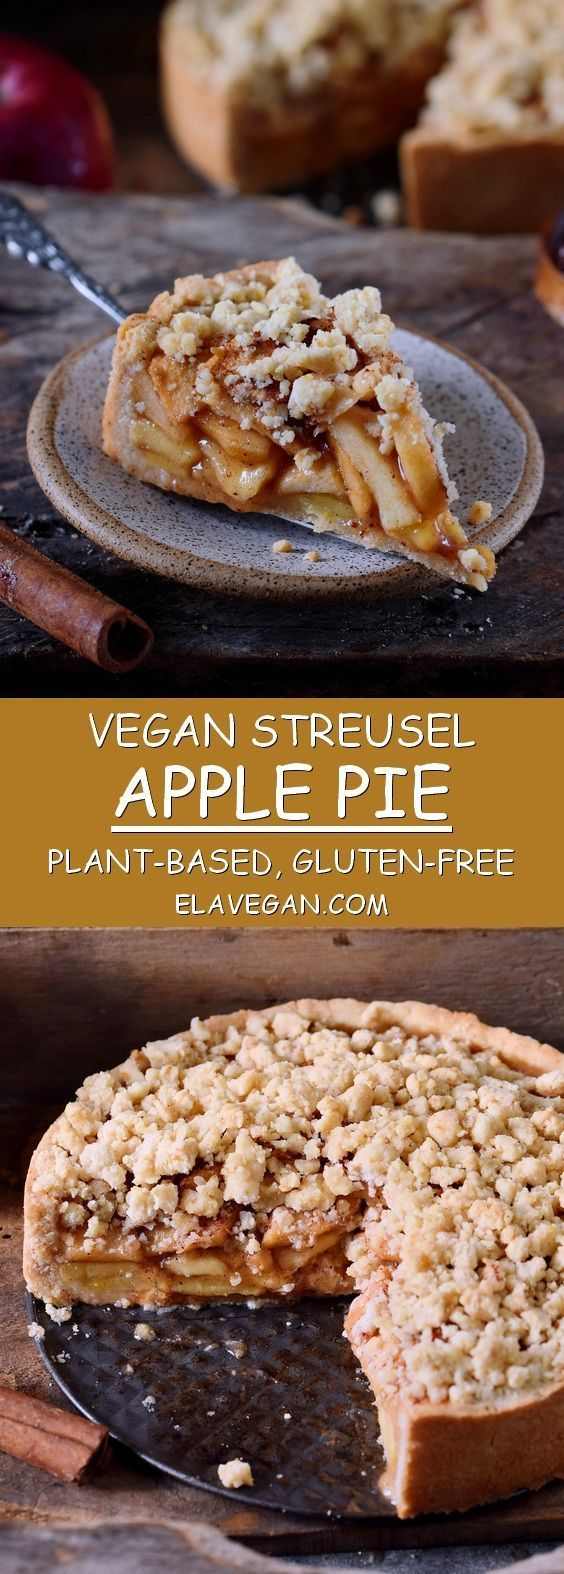 This vegan apple pie with streusel is the perfect fall dessert. The recipe is vegan, gluten-free, can be made nut-free, grain-free, and refined sugar-free! Also great for Thanksgiving!    This vegan apple pie with streusel is the perfect fall dessert. The recipe is vegan, gluten-free, can be made nut-free, grain-free, and refined sugar-free! Also great for Thanksgiving!